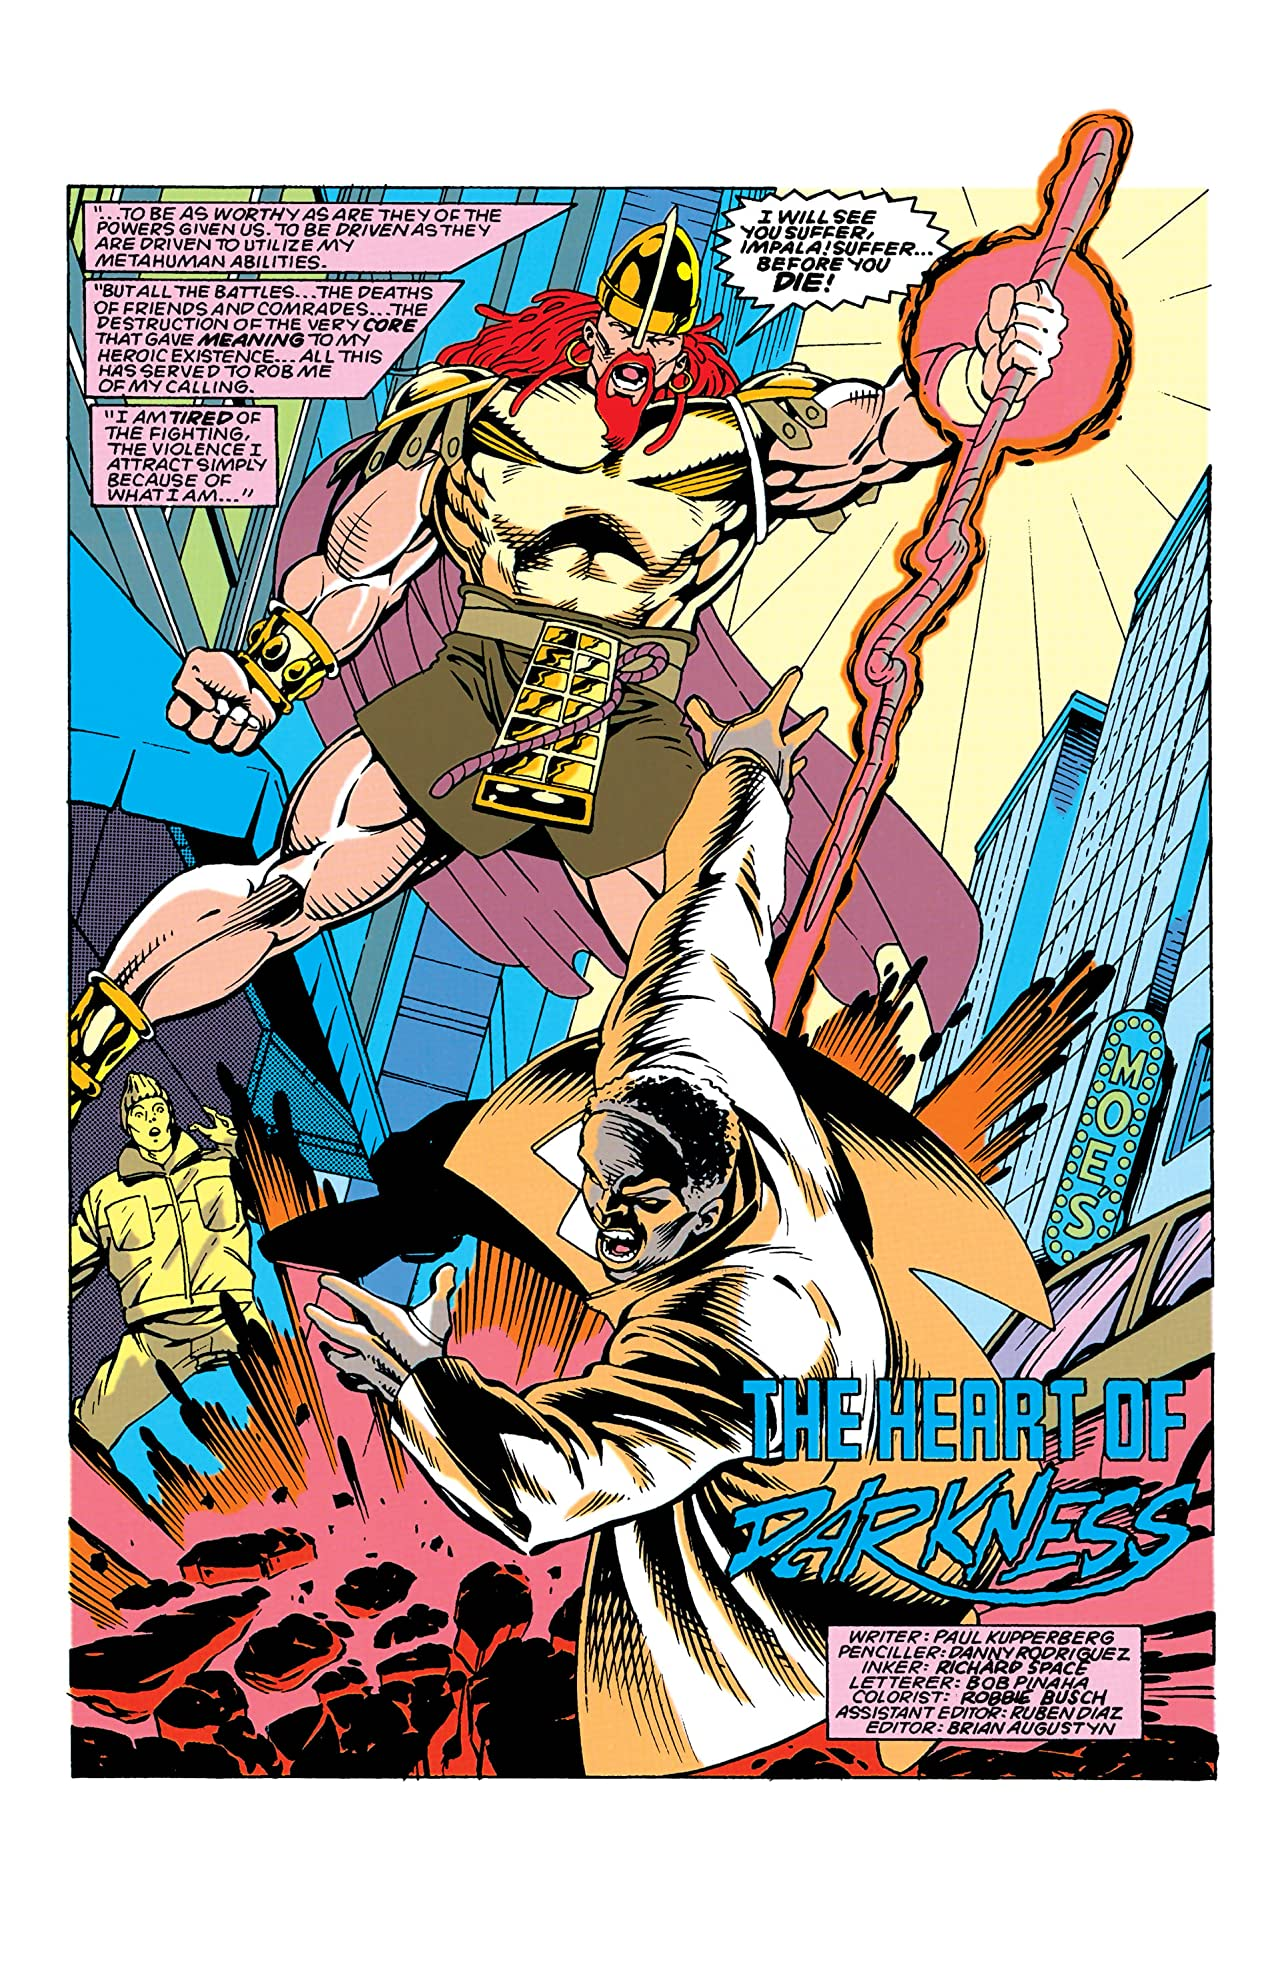 Justice League Quarterly (1990-1994) #17